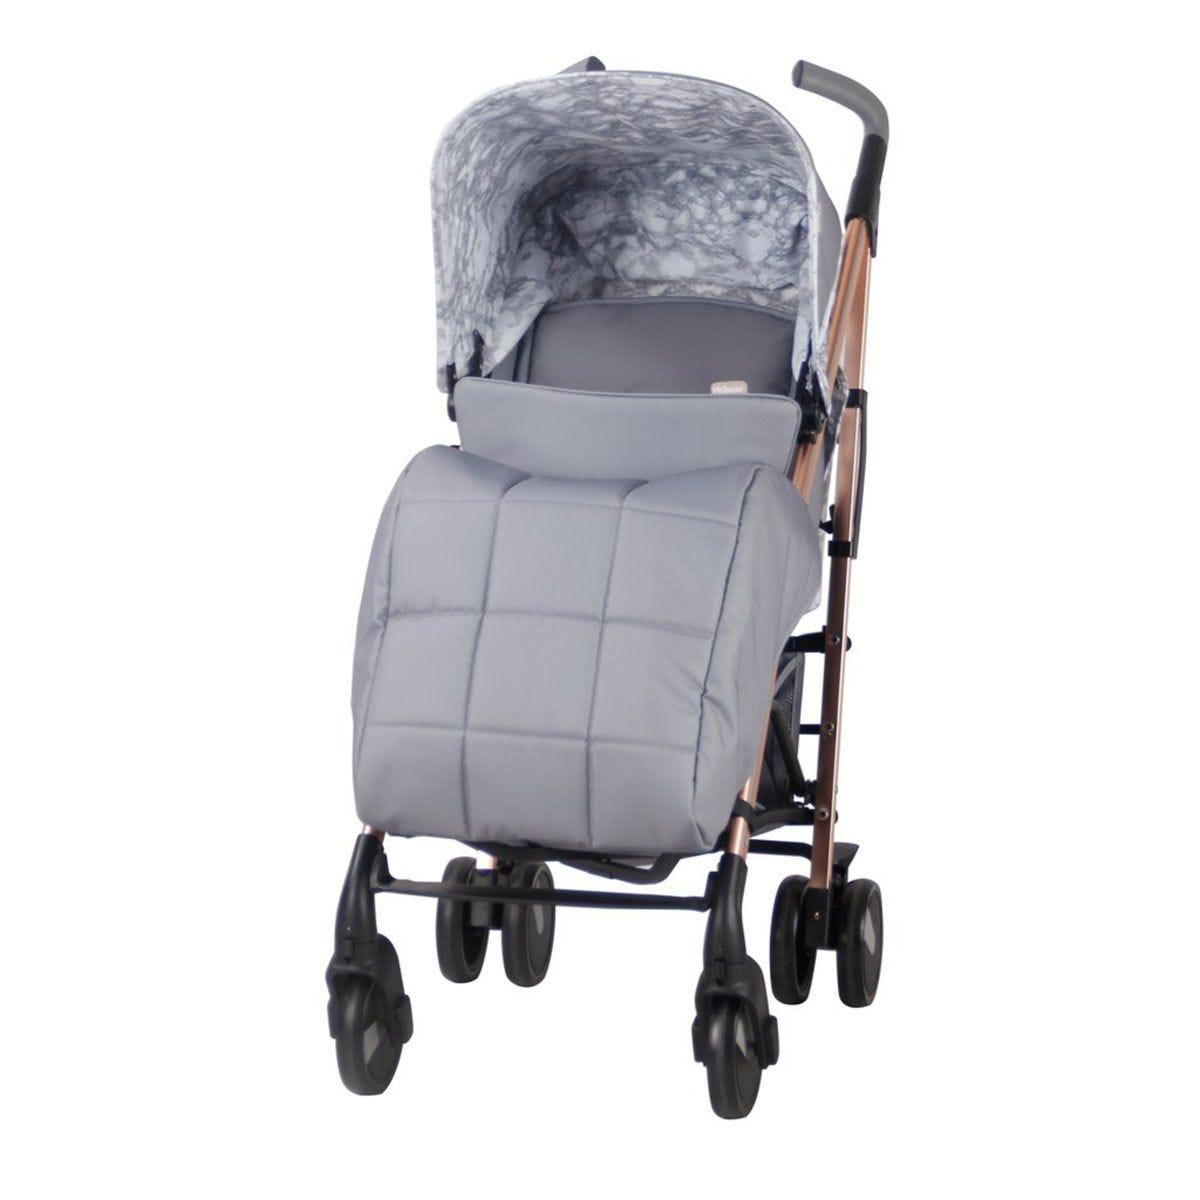 My Babiie Dreamiie by Samantha Faiers MB51 Marble Stroller - Grey